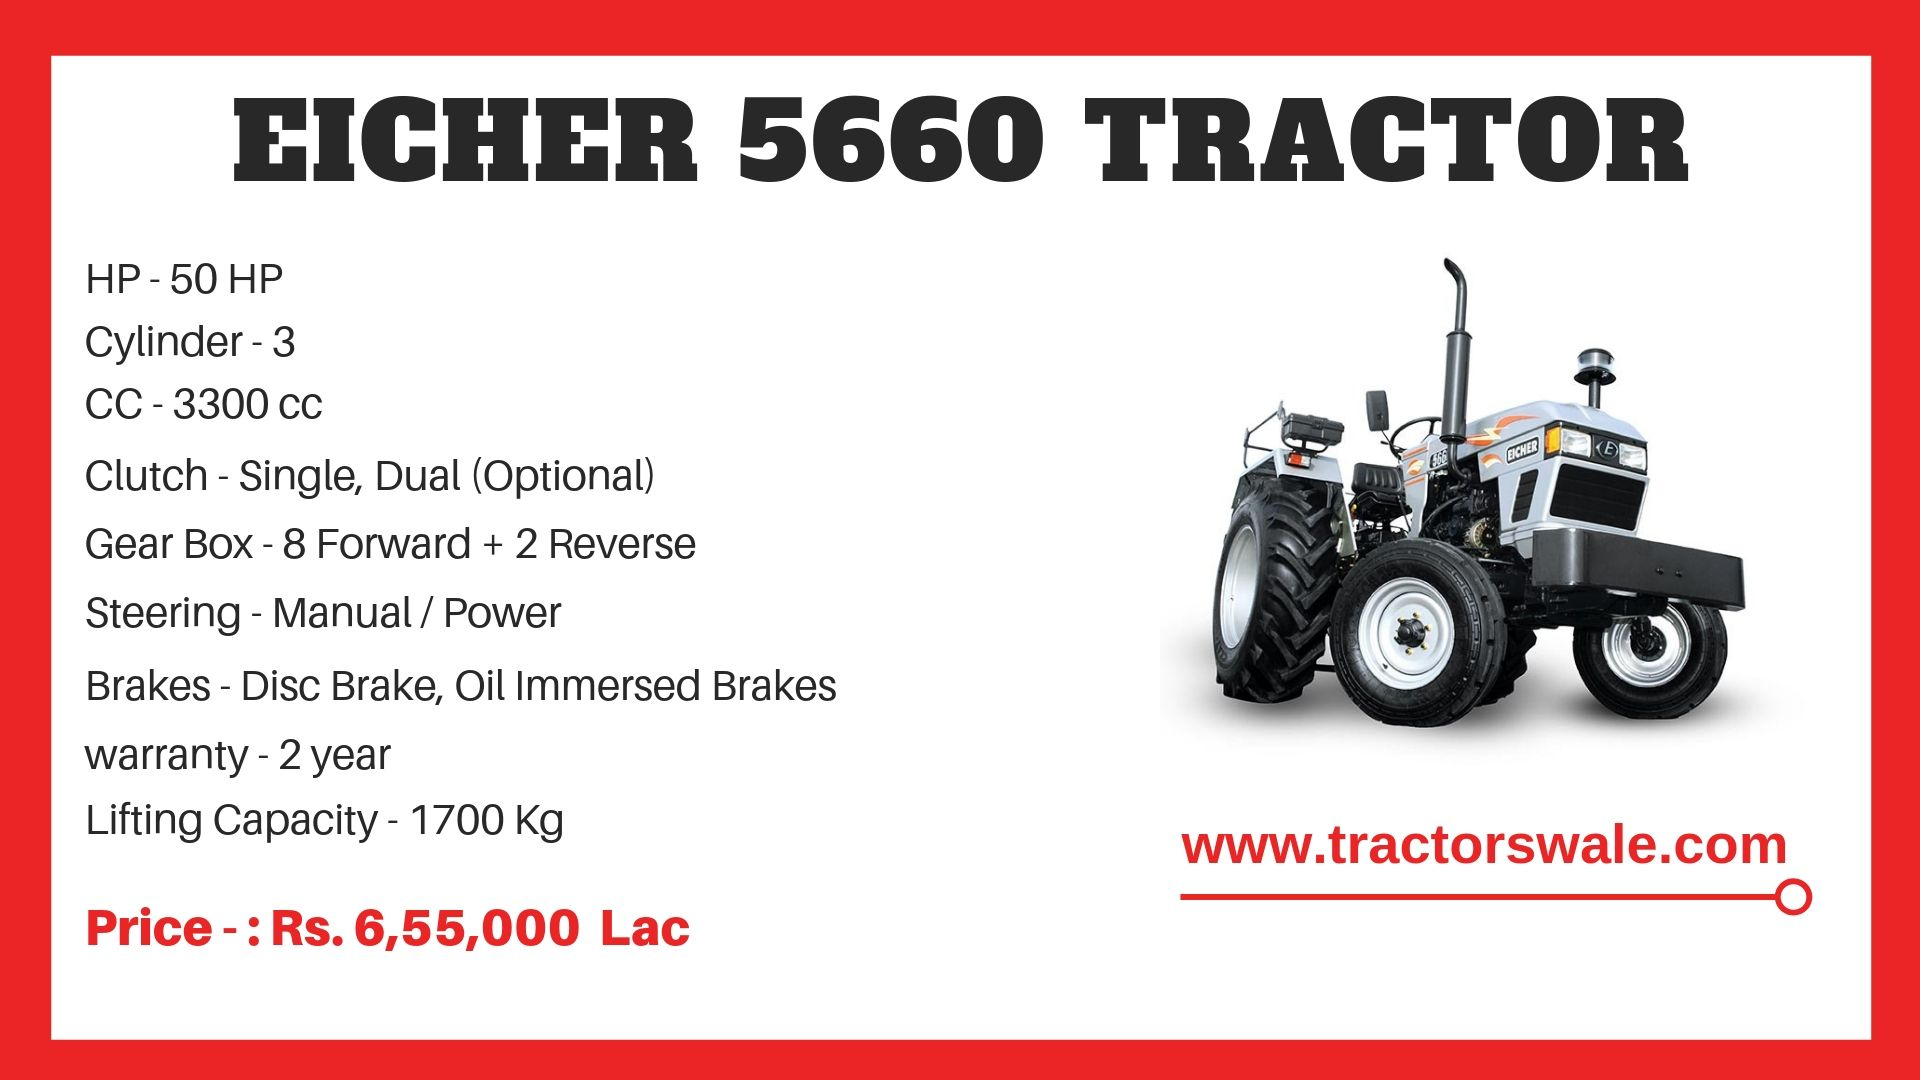 Eicher 5660 Tractor Model Specifications